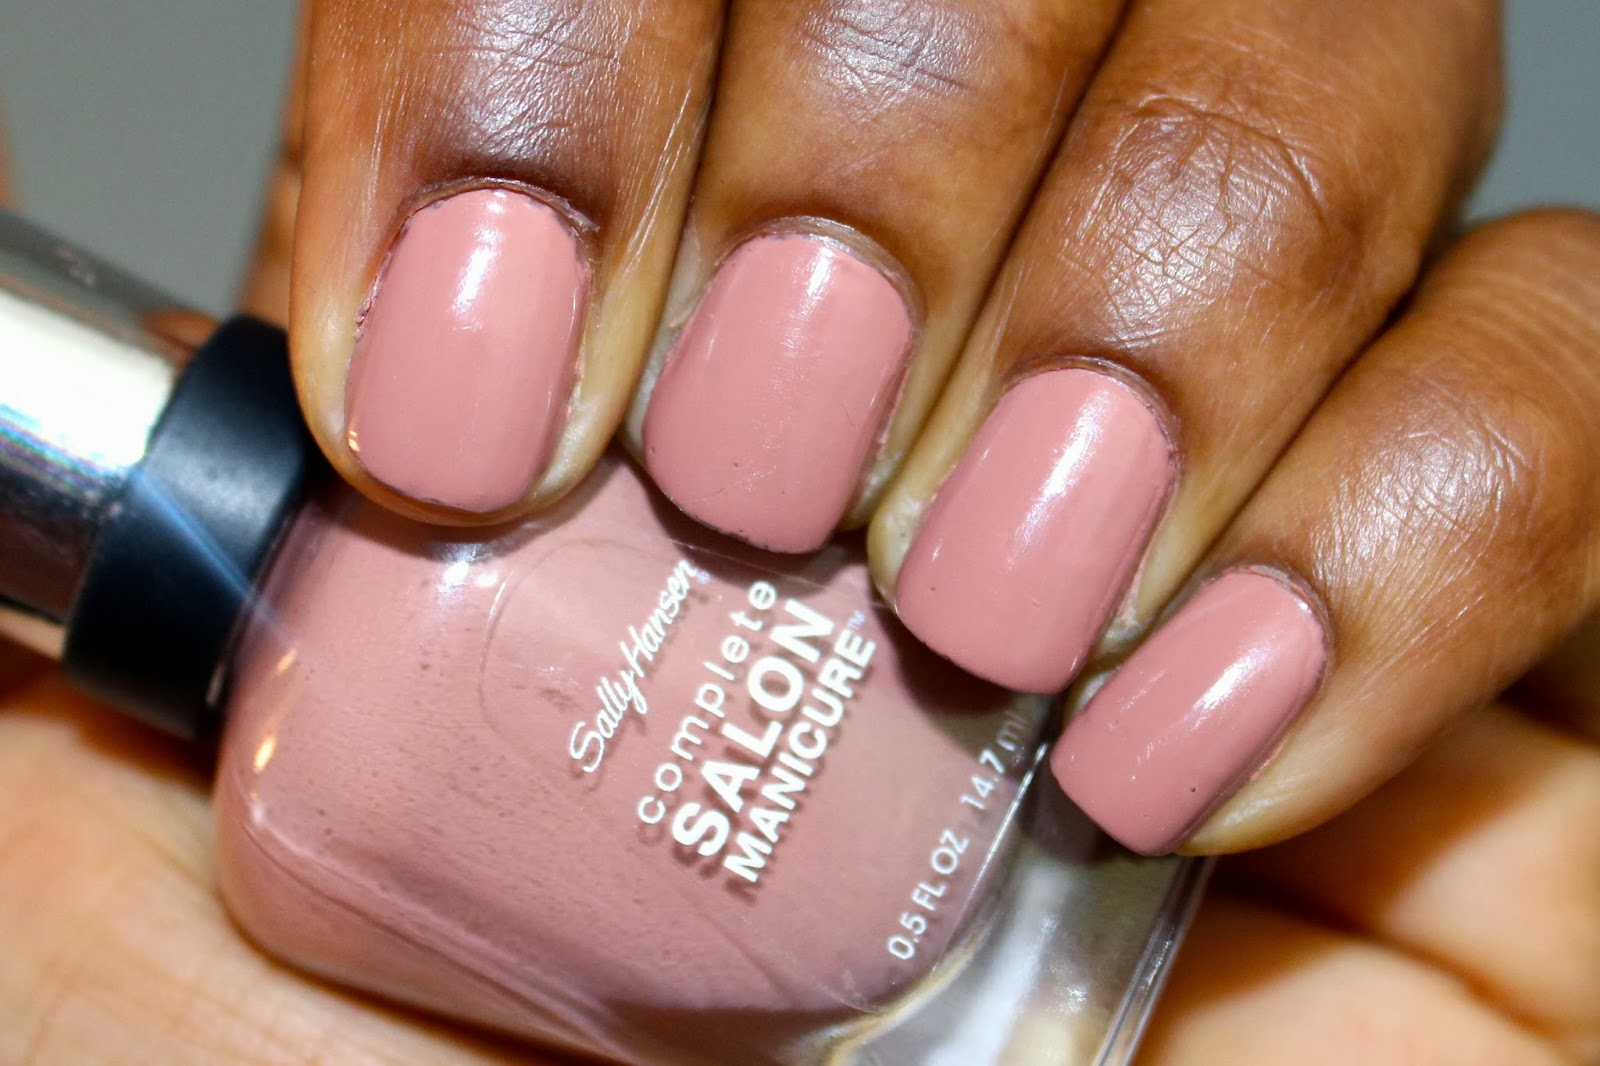 Manicure Monday - Mudslide - The Gabe Fix by Gabrielle Flowers